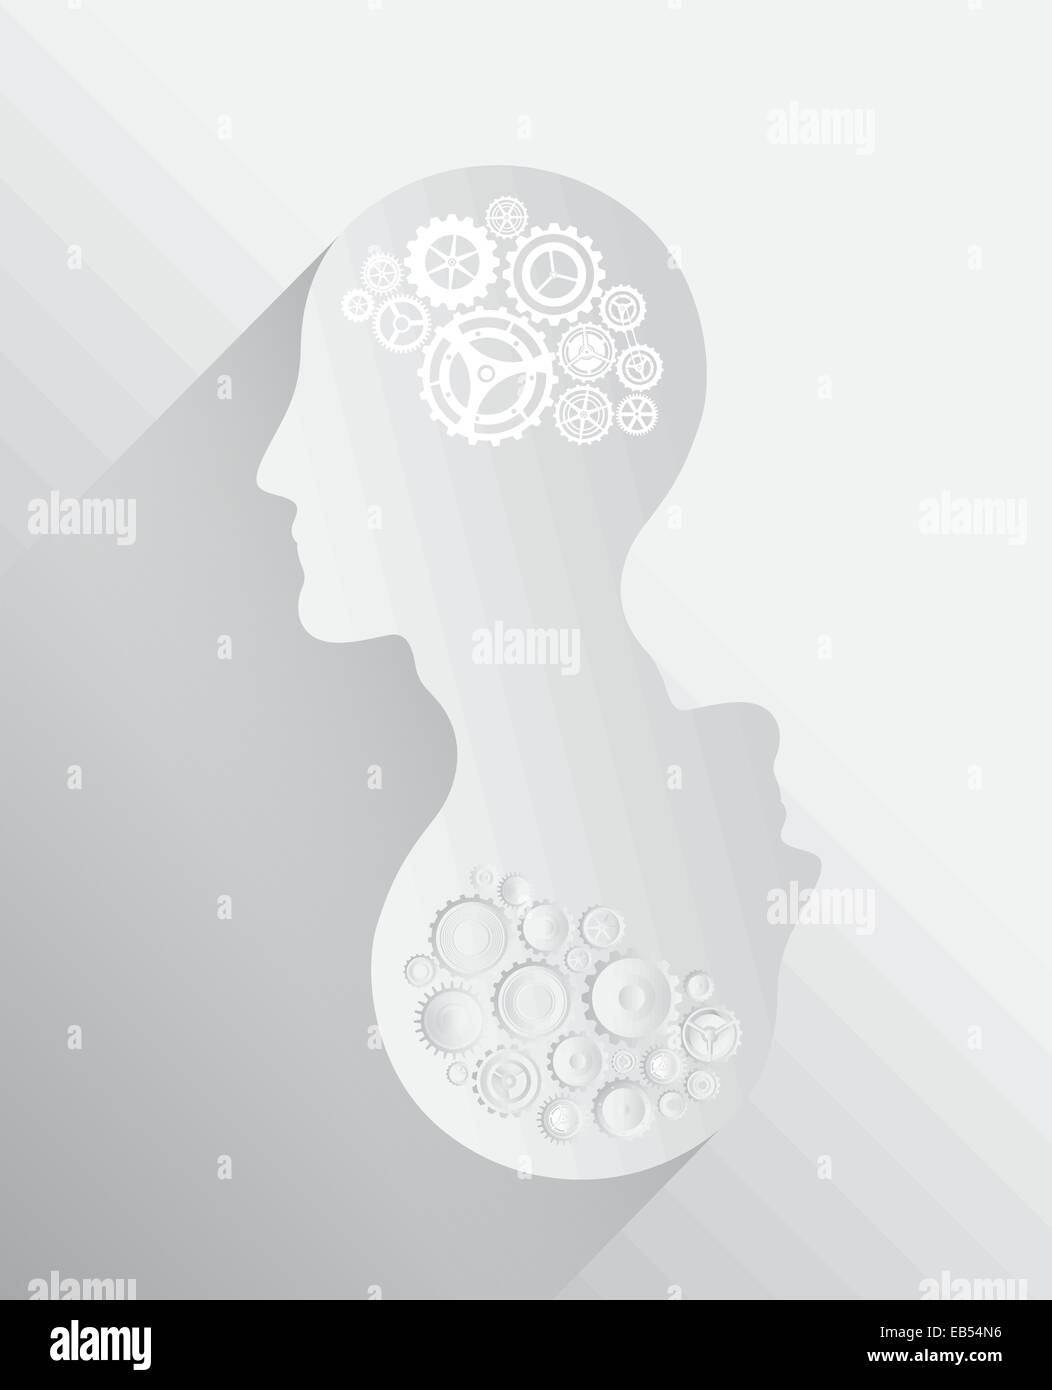 Heads with cogs and wheels for brains - Stock Image